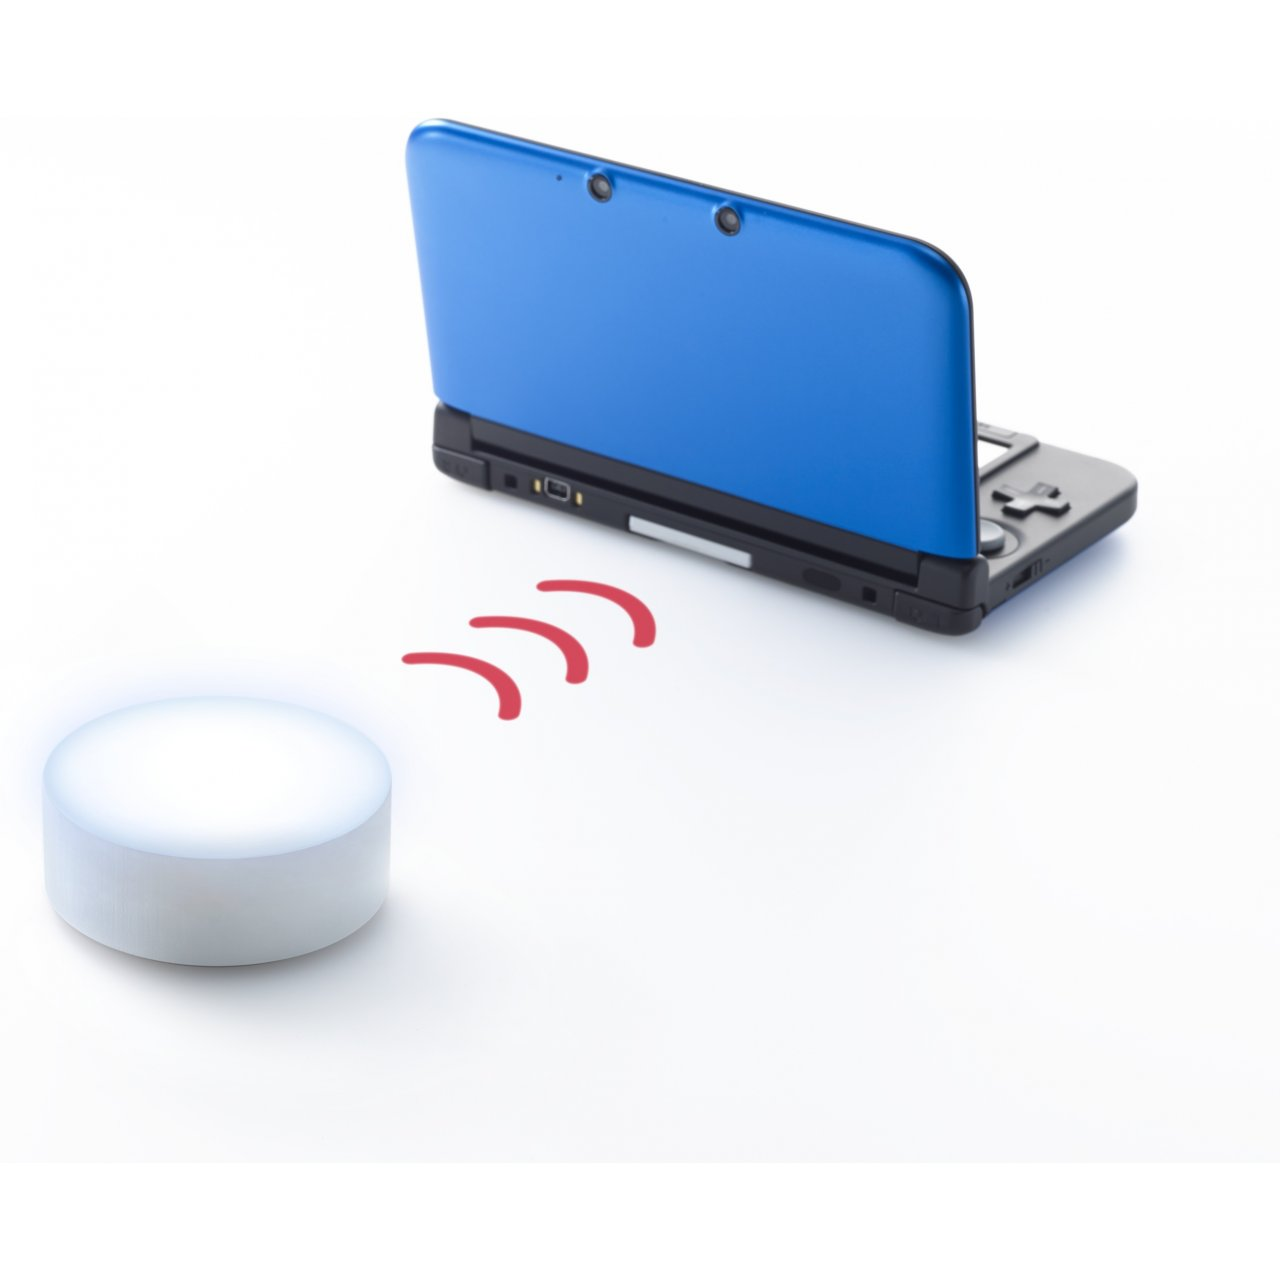 Nintendo 3DS NFC Reader and Writer